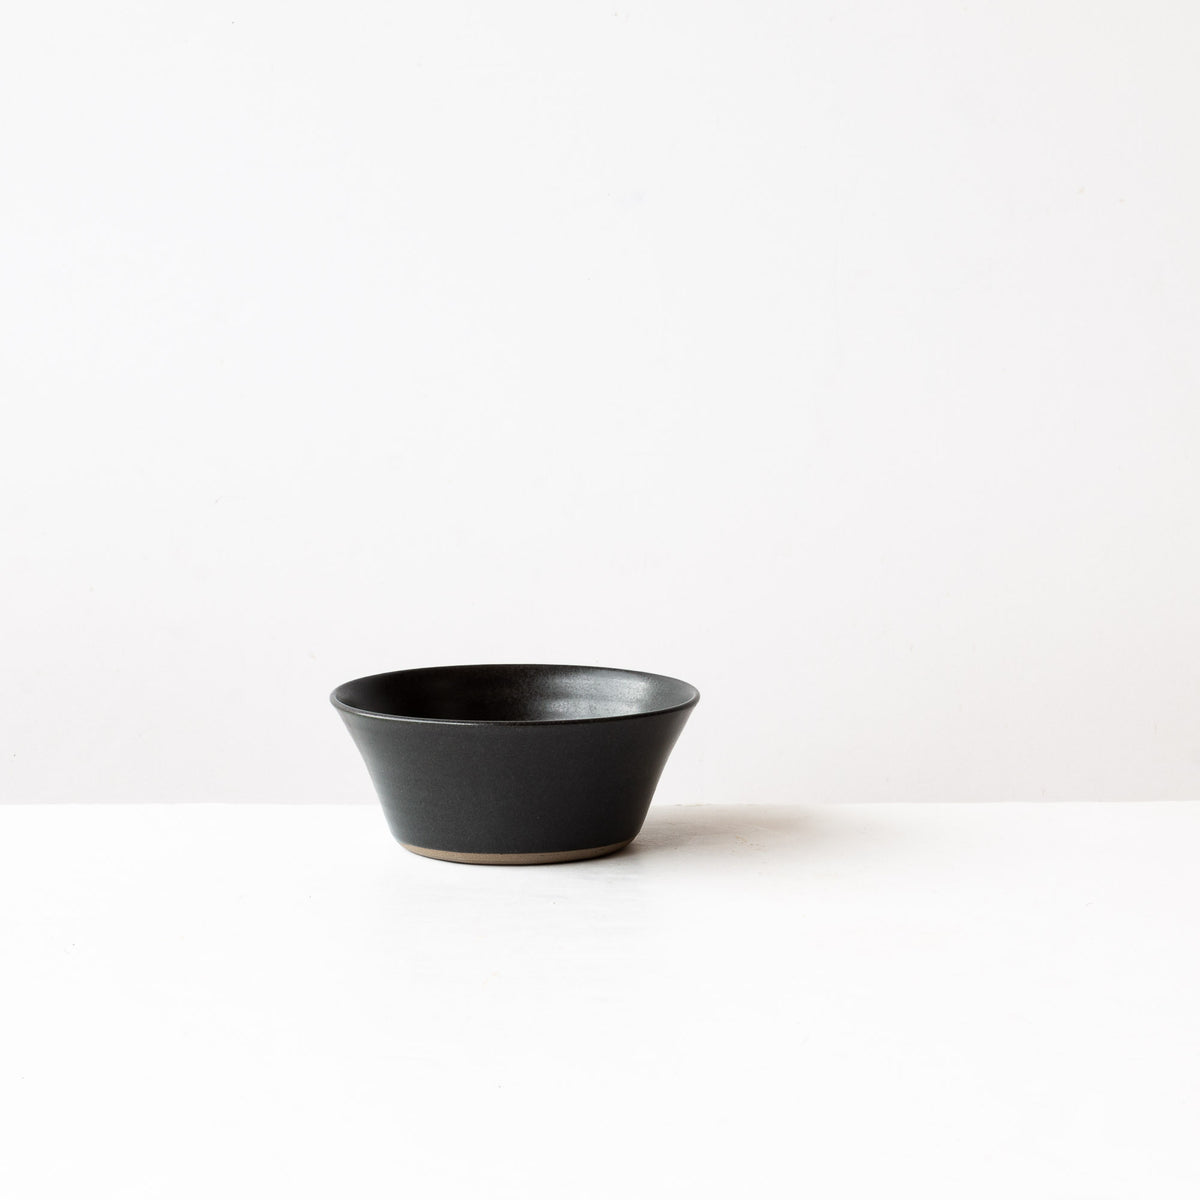 Matte Black - Handmade Grey Stoneware Blooming Bowl - Sold by Chic & Basta